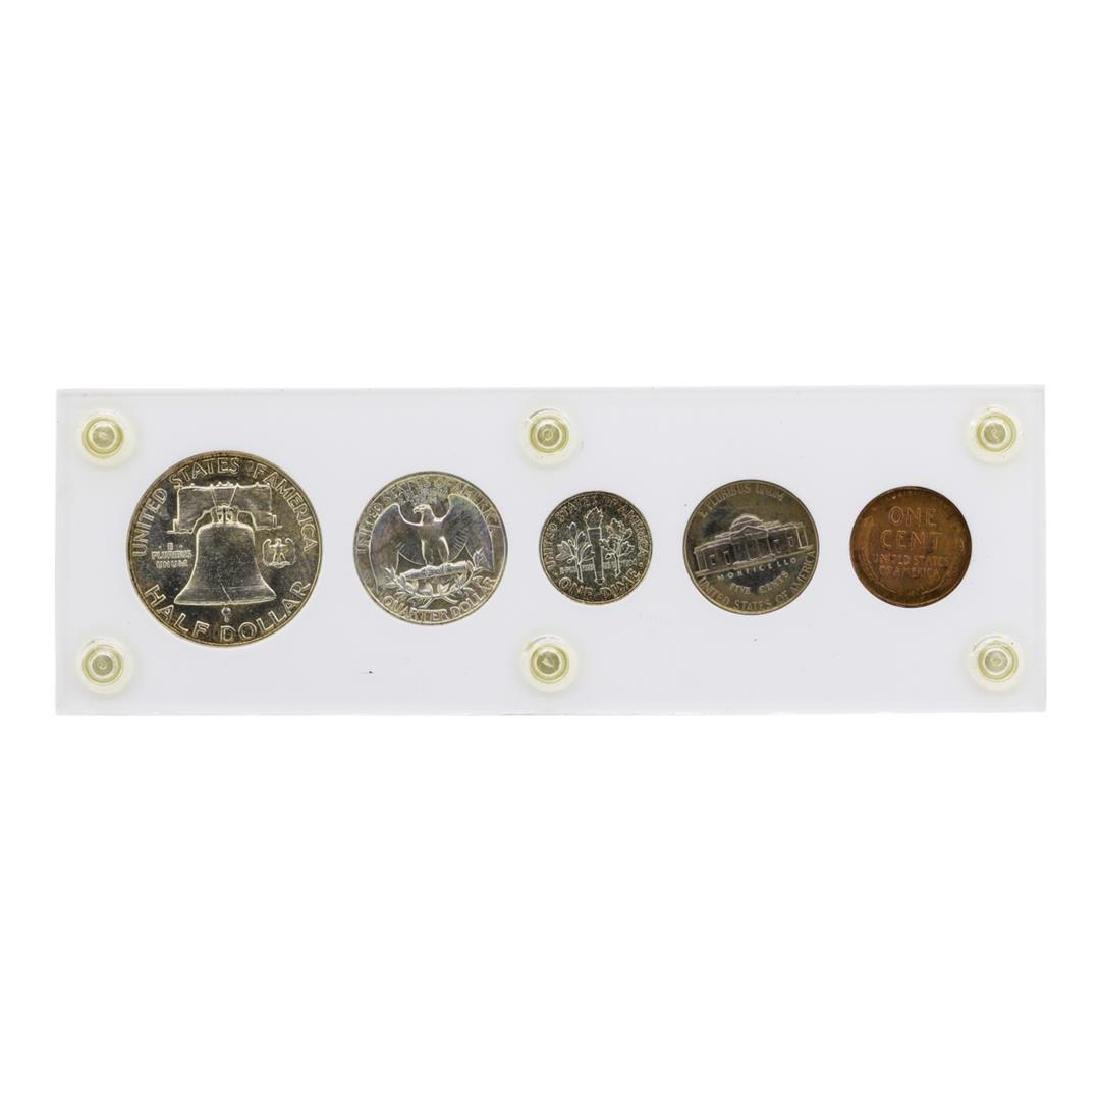 1950 (5) Coin Proof Set - 2